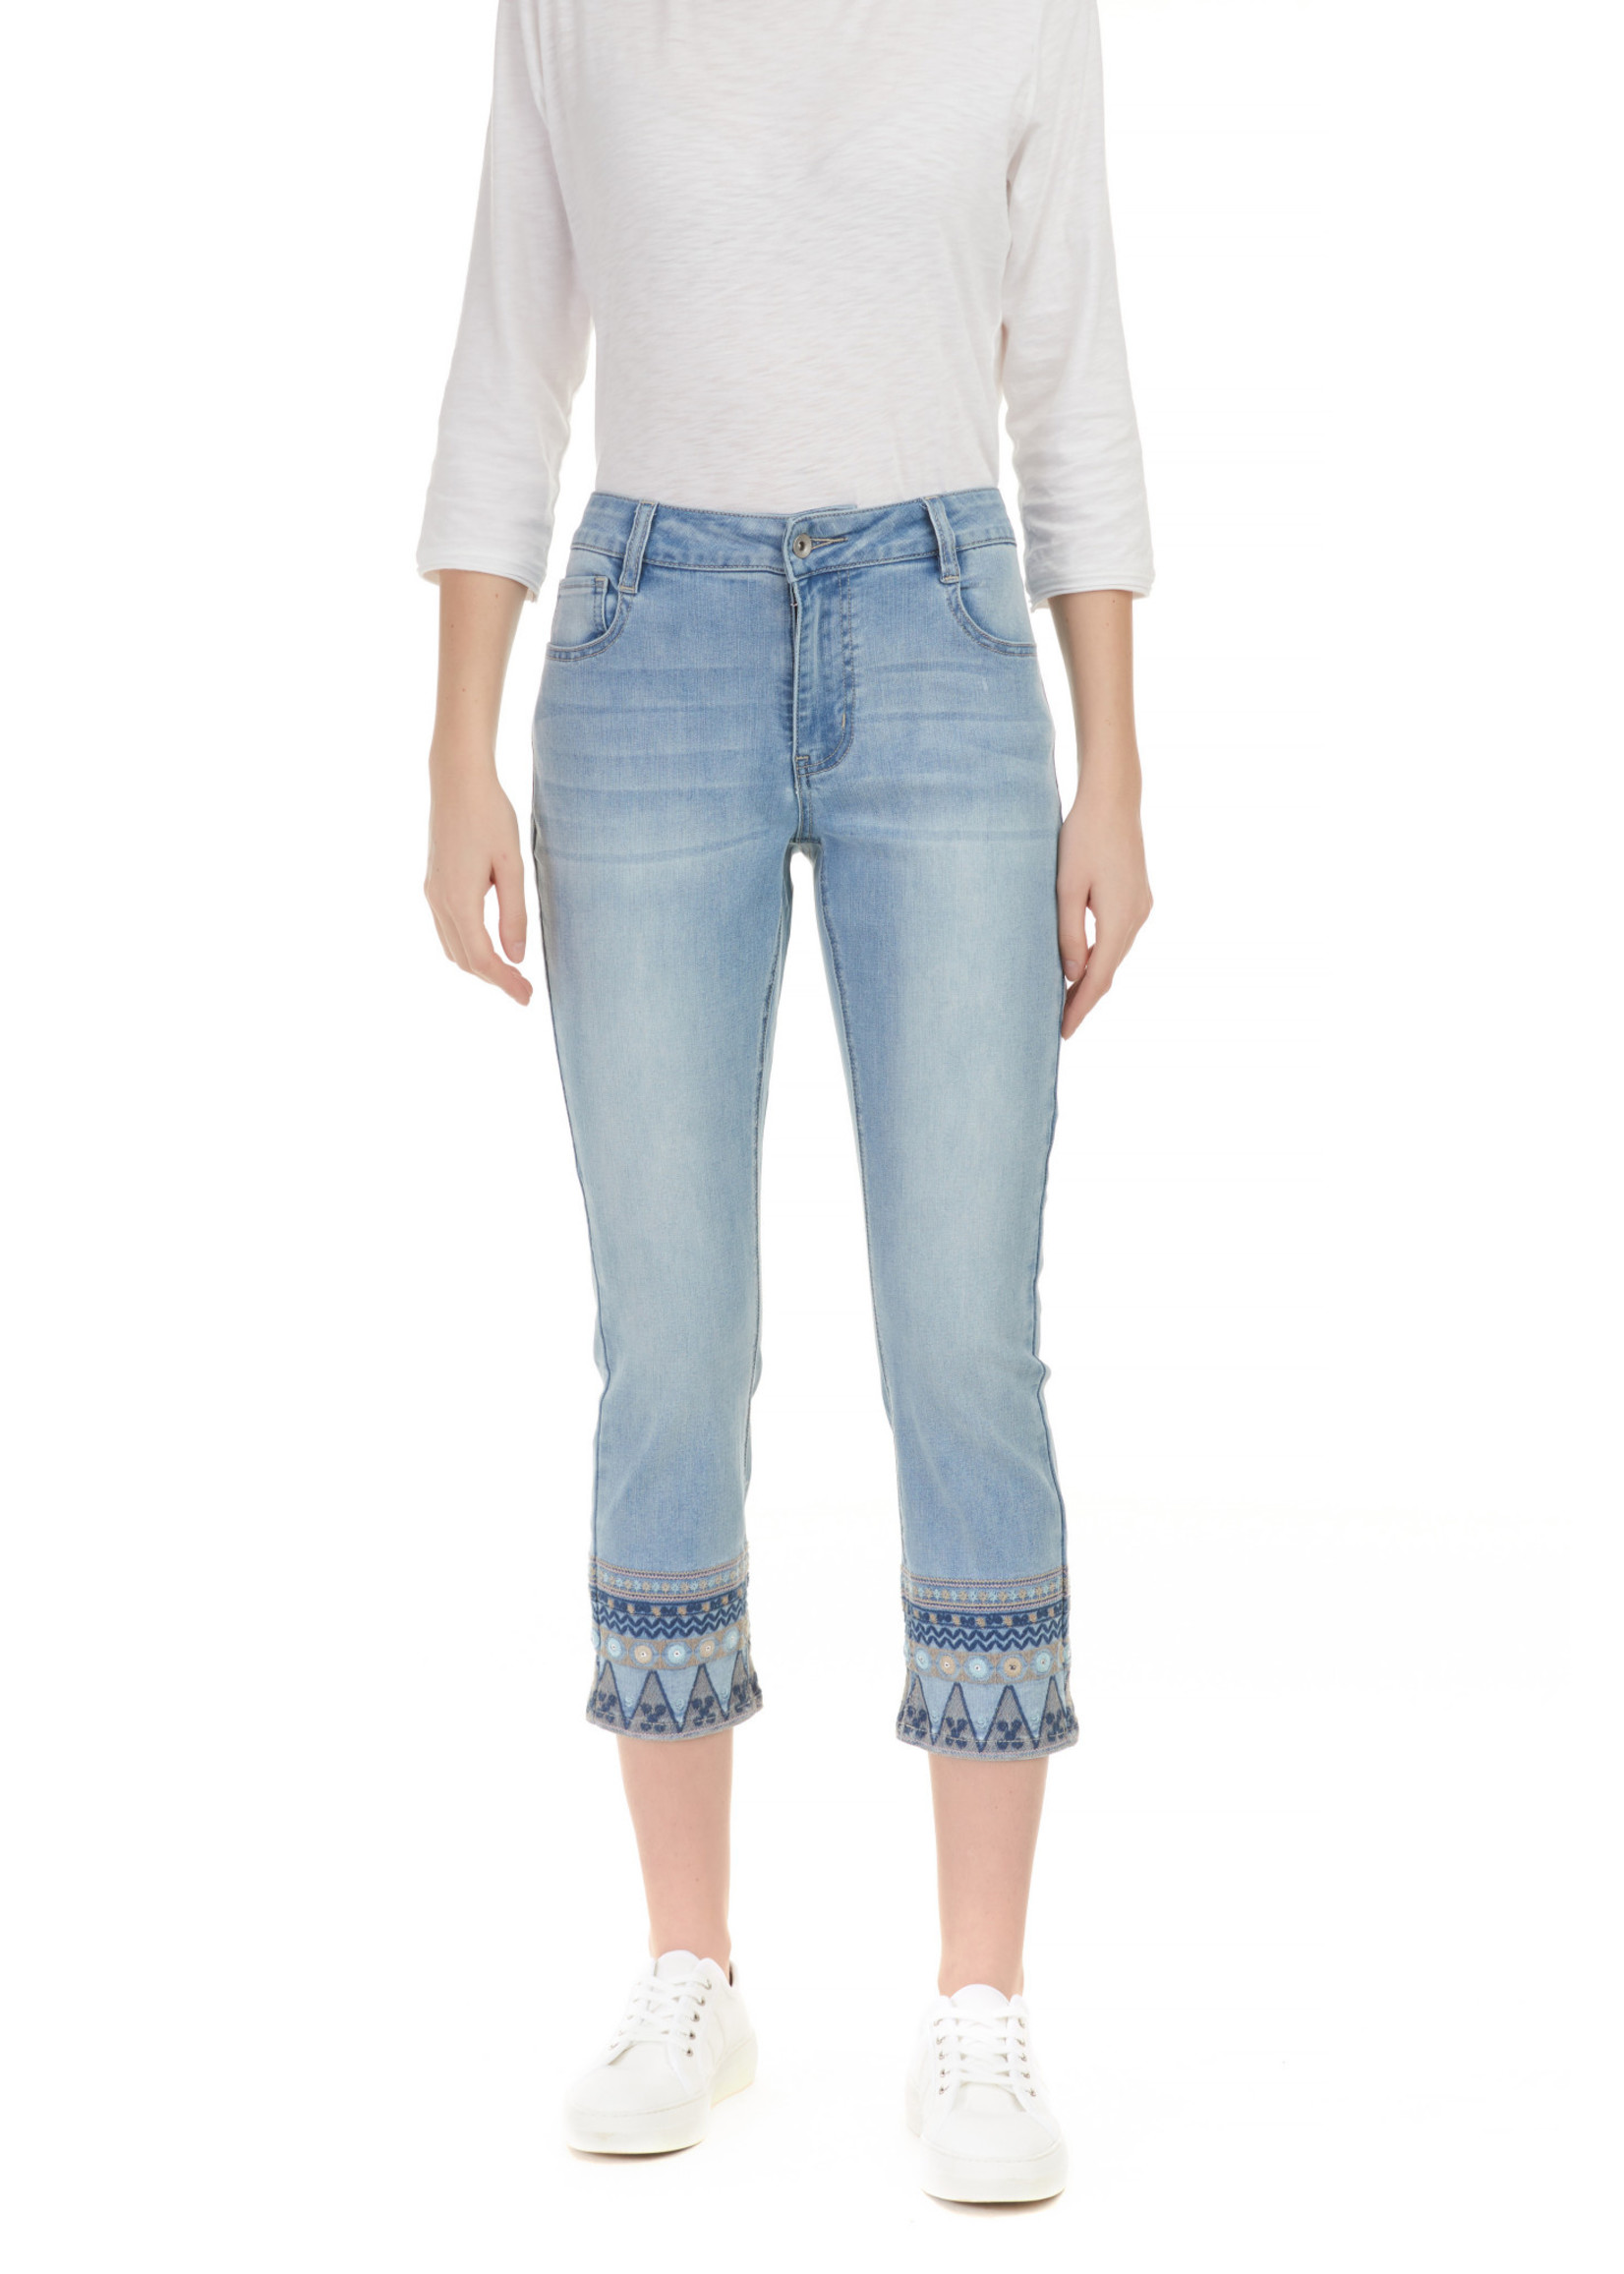 Charlie B Denim With Embroidery Detail At Leg